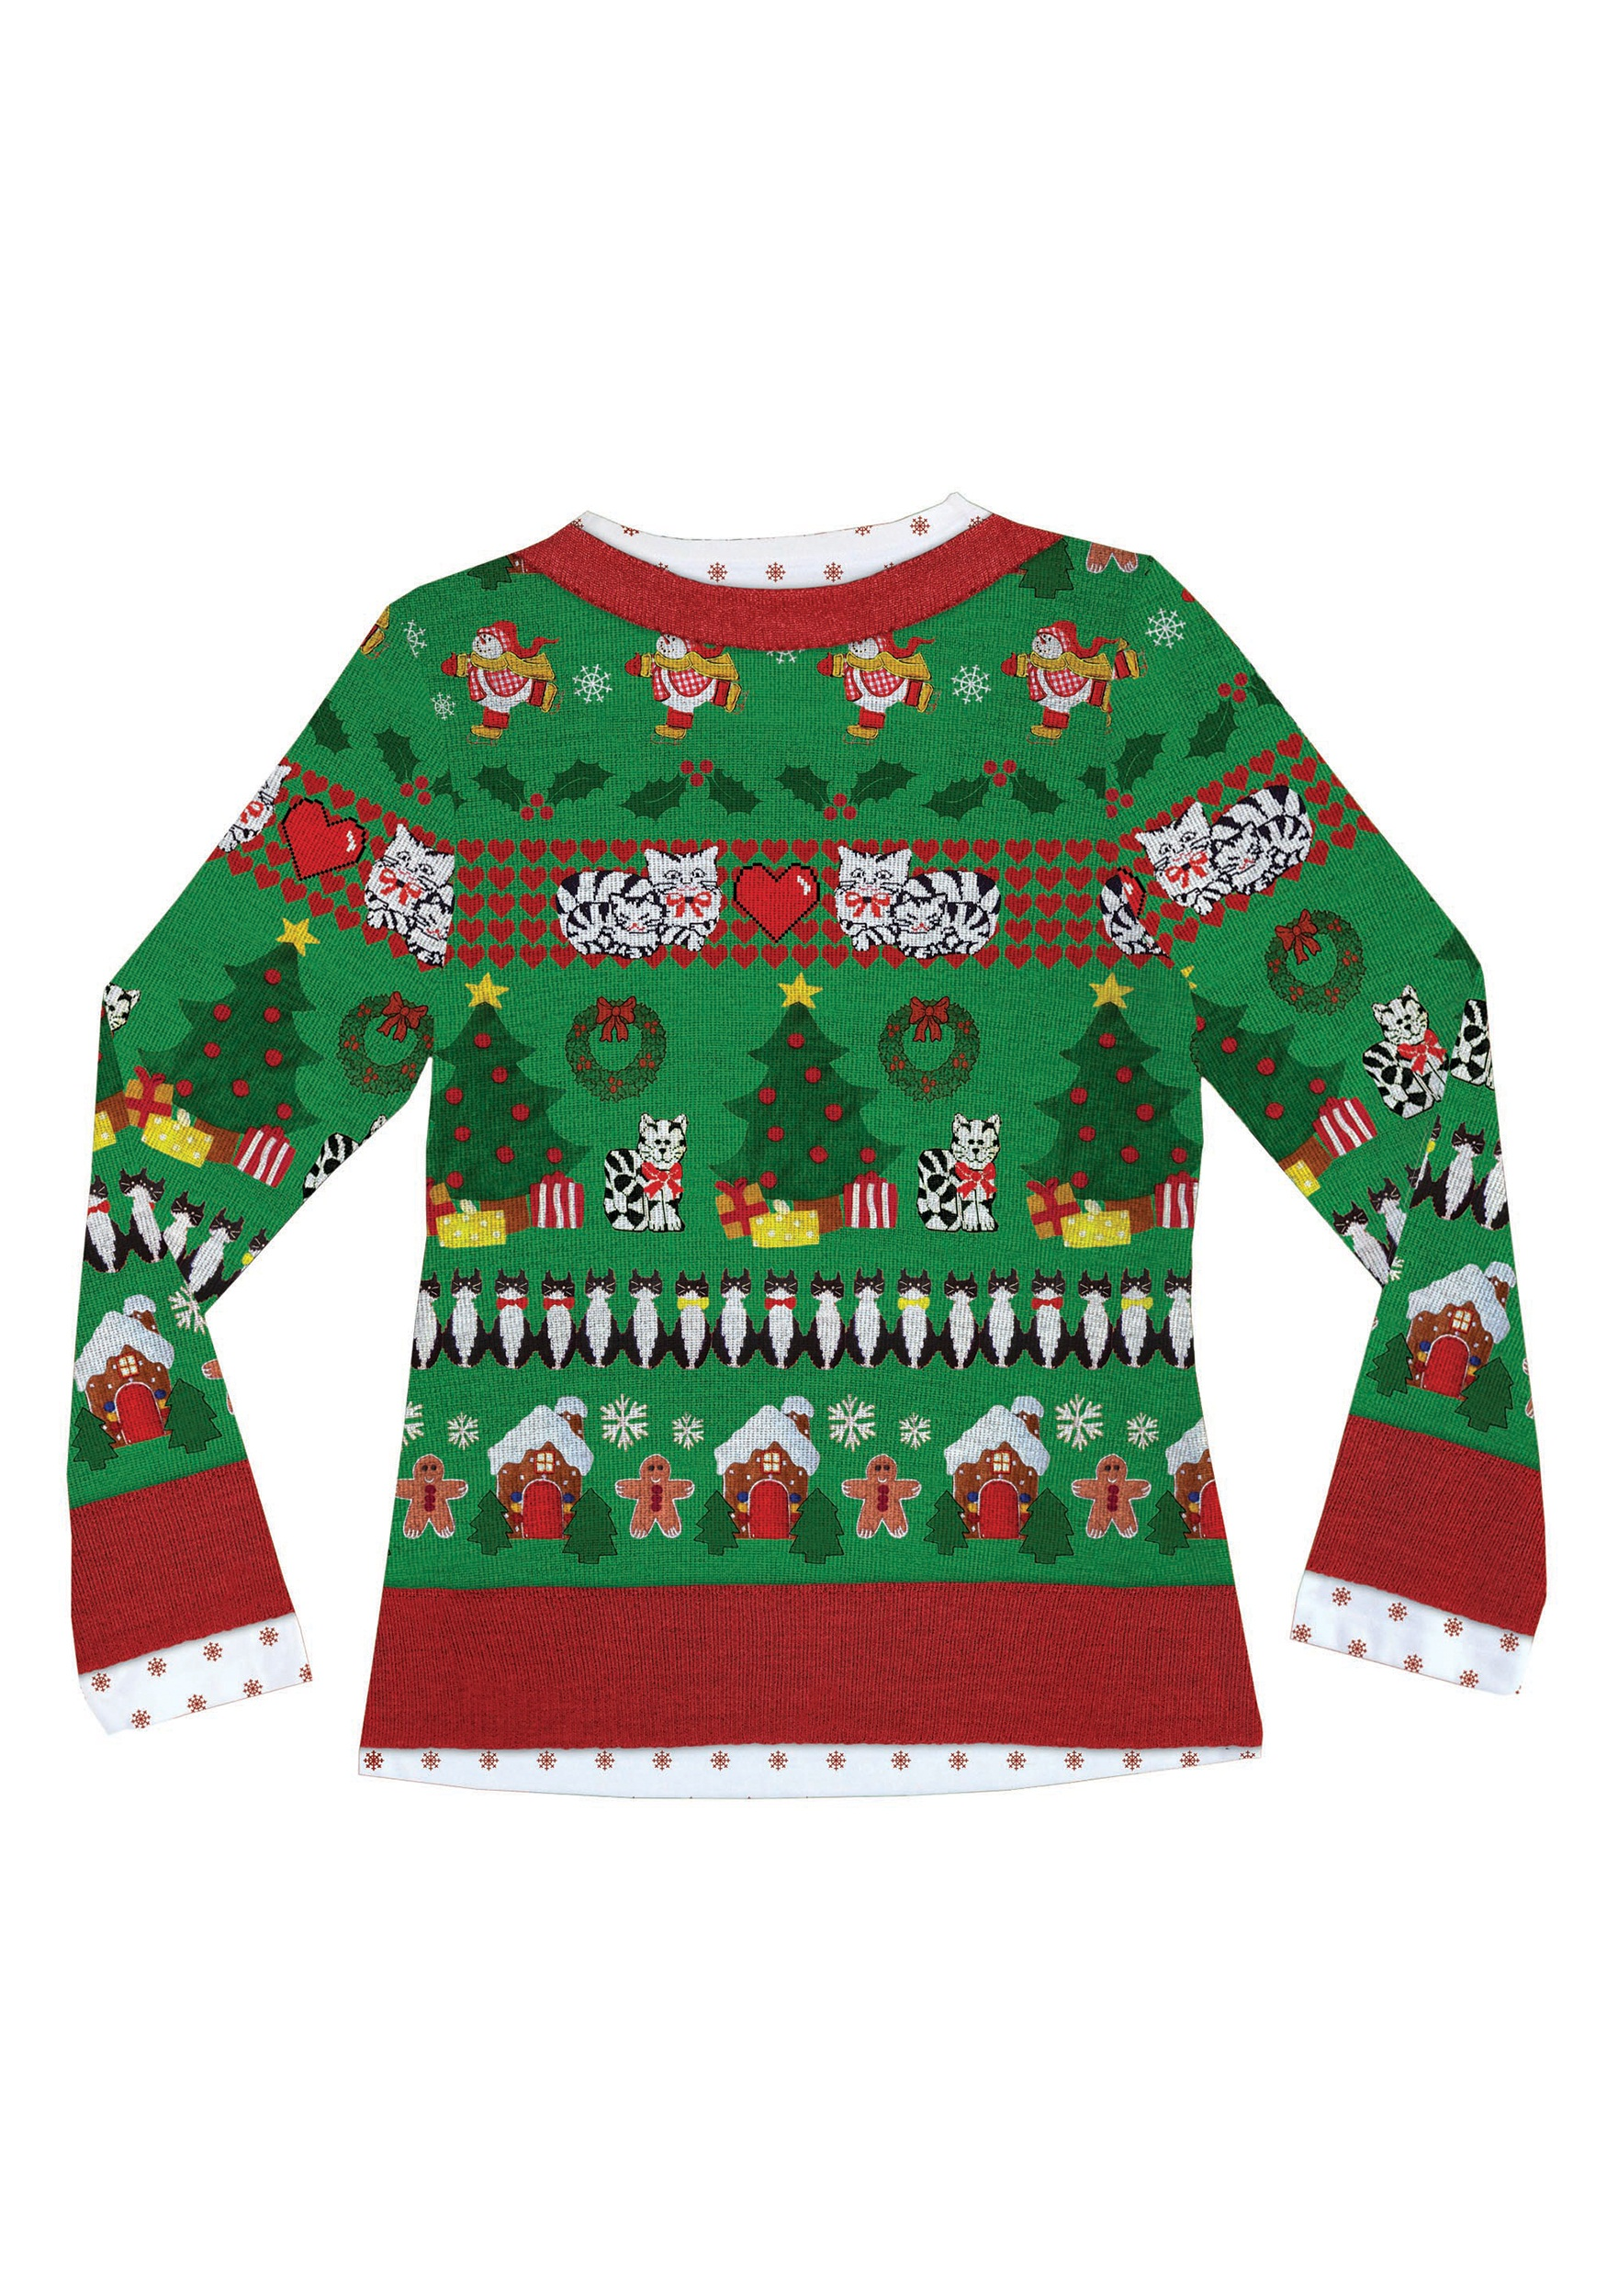 Where to get an ugly christmas sweater